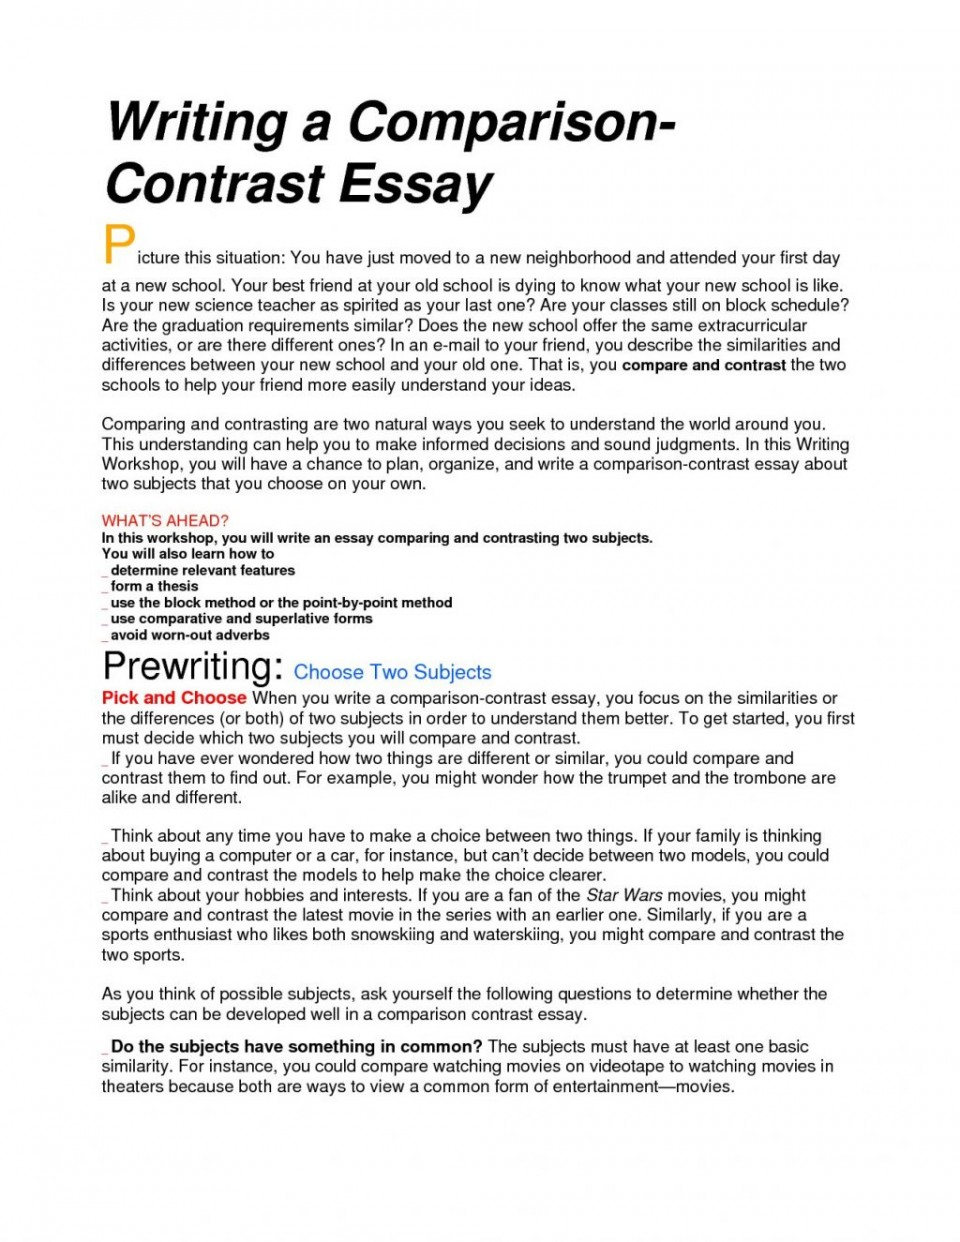 009 Sythesis Of Nanopolymeric Cheap Thesis Statement Proofreading Compare And Contrasty Topics For High Schoolents Photo Comparisonys Esl How To Teach The 1024x1325 Unforgettable Comparison Contrast Essay School Prompts Middle 960